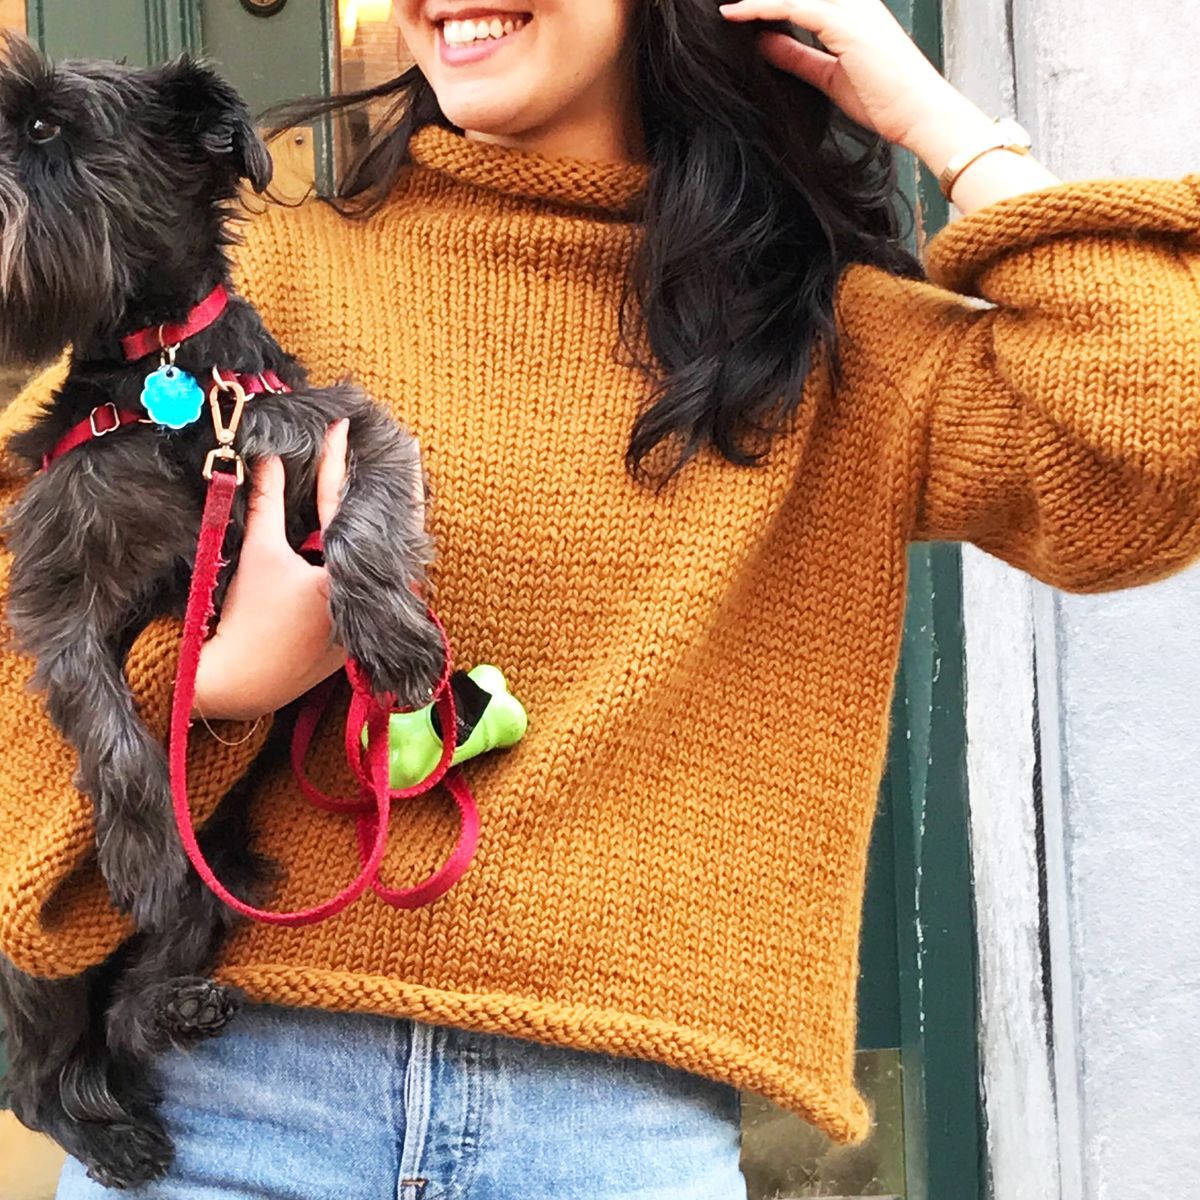 Wool And The Gang Audrey Cropped Sweater Knitting Kit Review